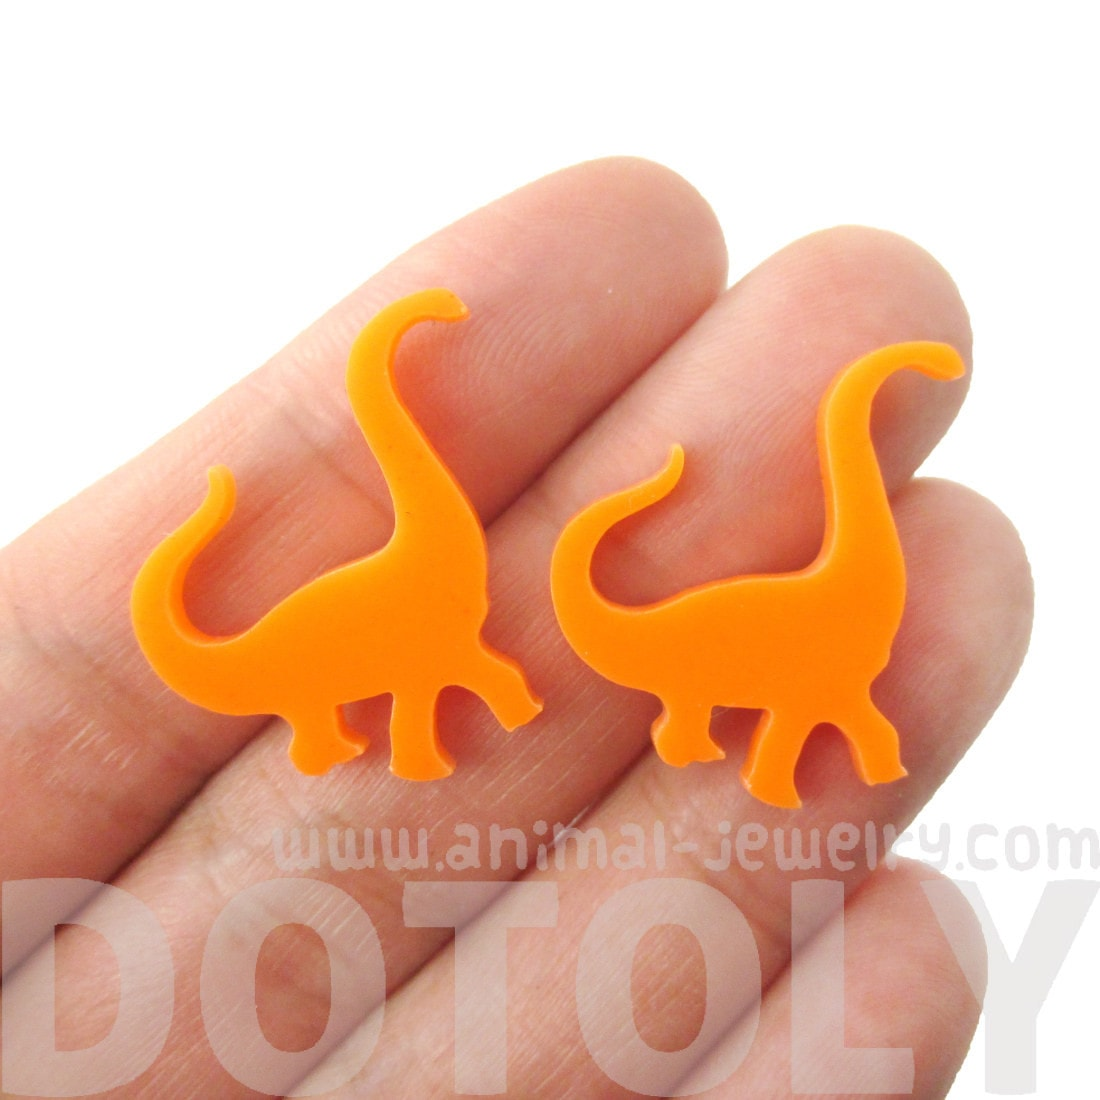 Large Brontosaurus Dinosaur Silhouette Shaped Stud Earrings in Orange